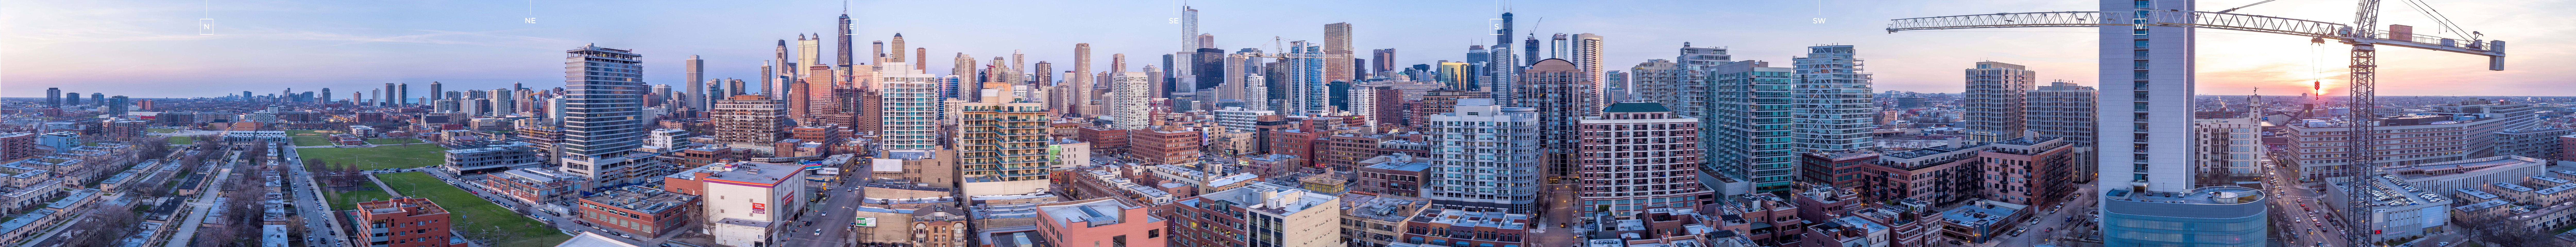 The Hudson 360° Views - SEE CHICAGO FROM A NEW PERSPECTIVE - floor 10-15